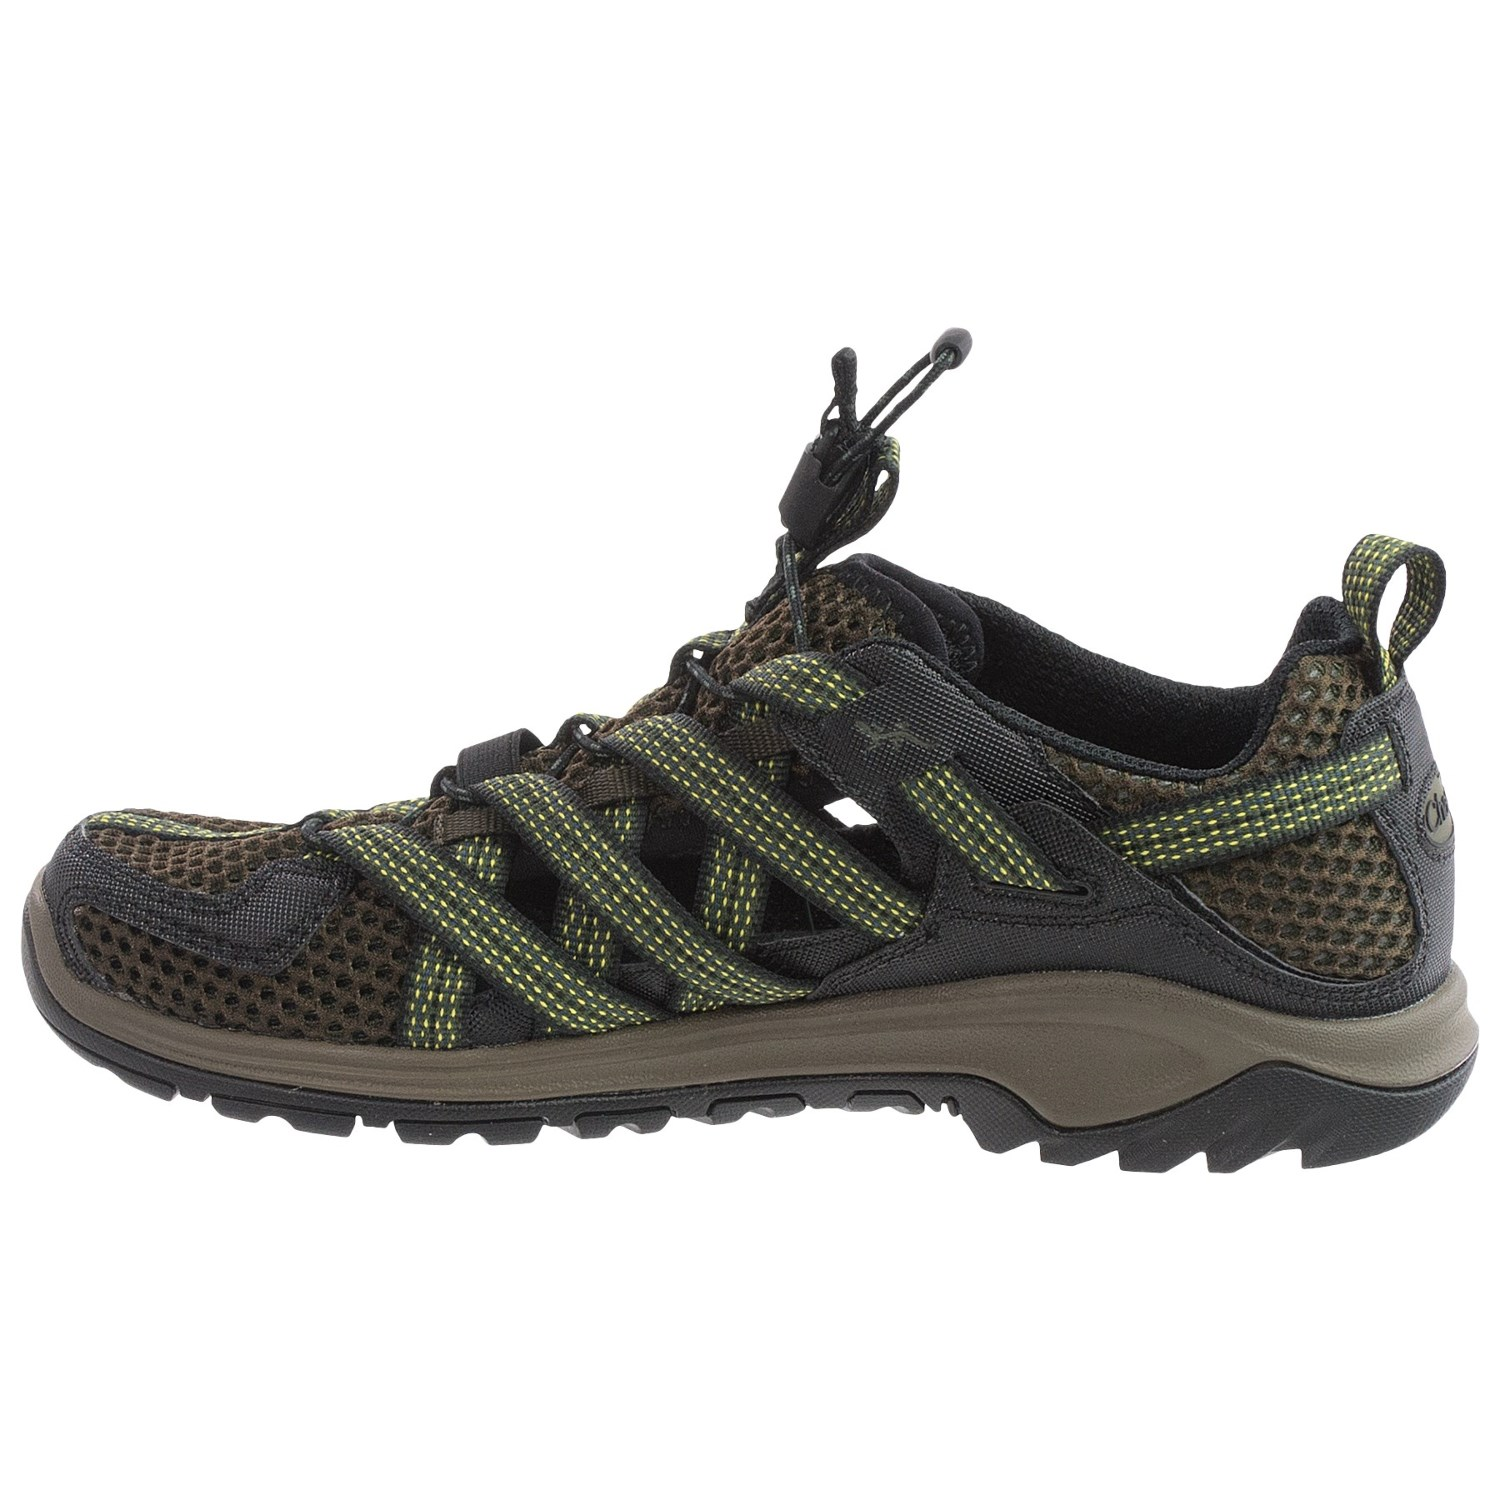 Chaco Outcross Evo  Water Shoes Reviews